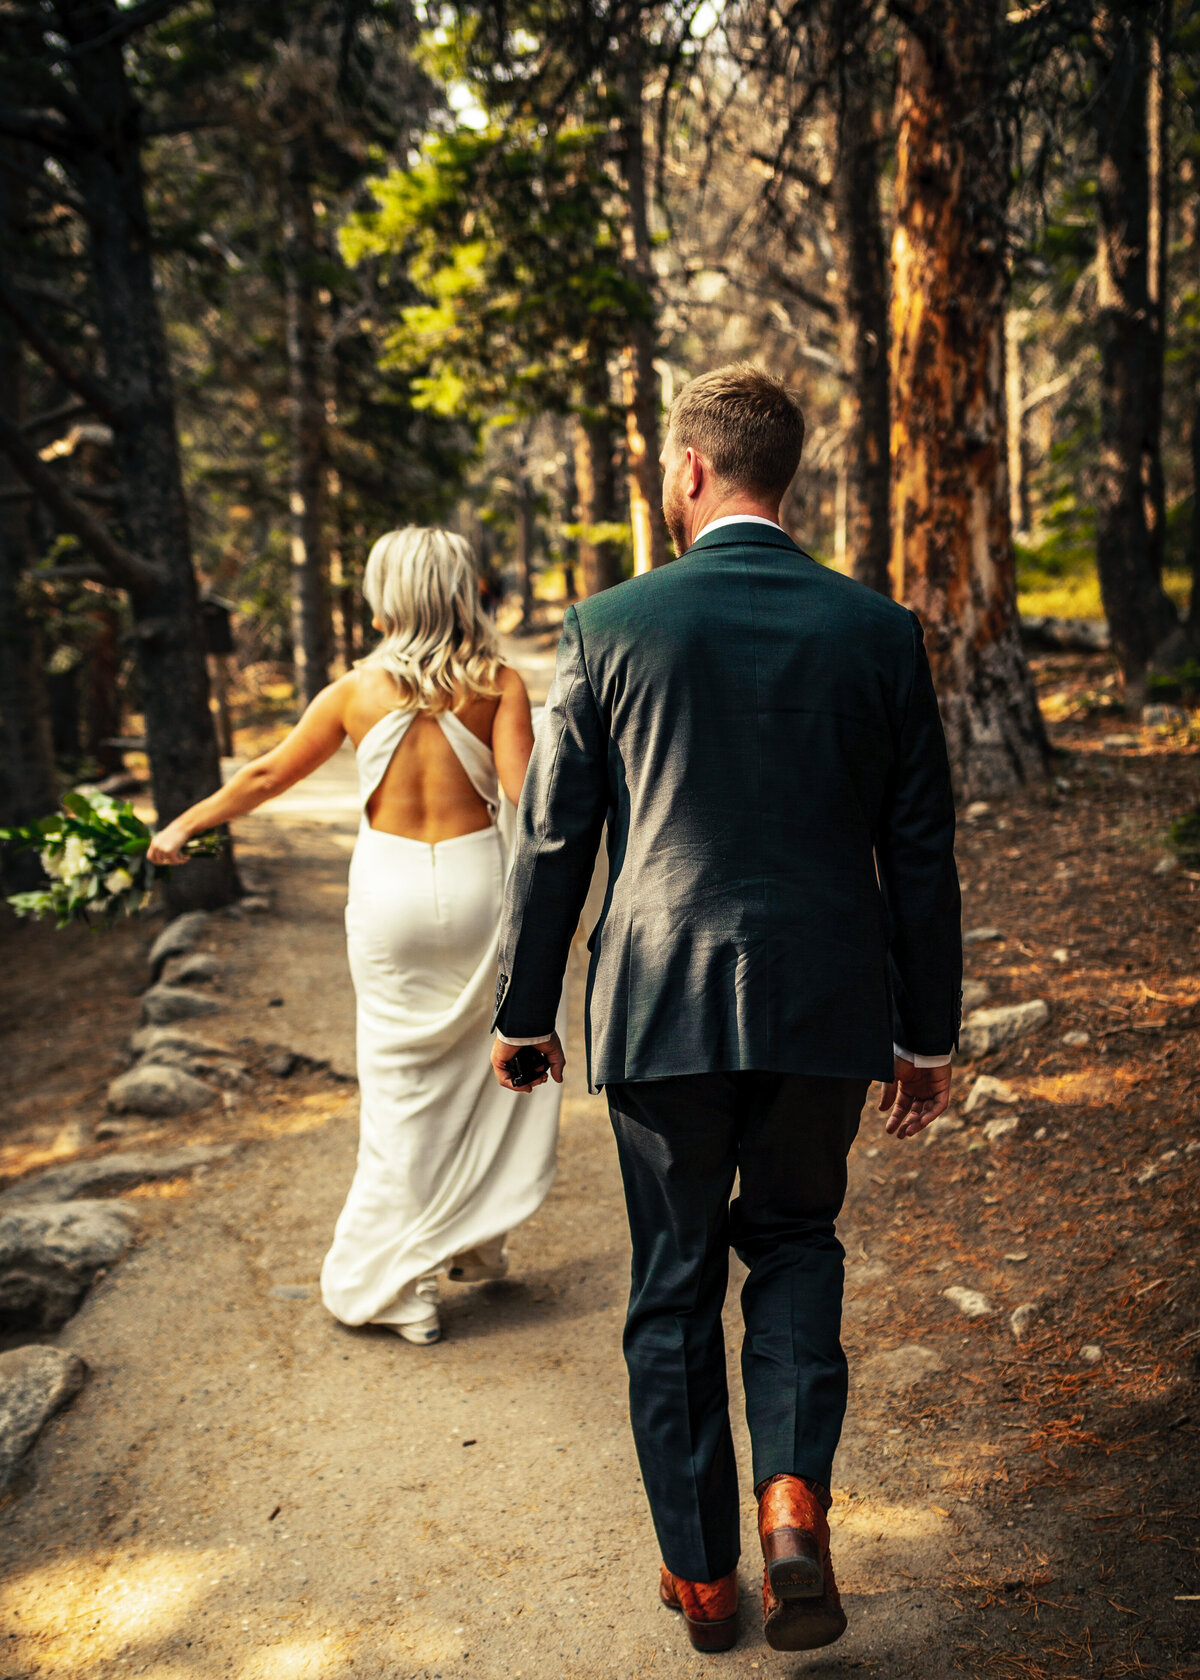 A blonde bride wearing a backless dress walks in front of her groom in a tall forest.